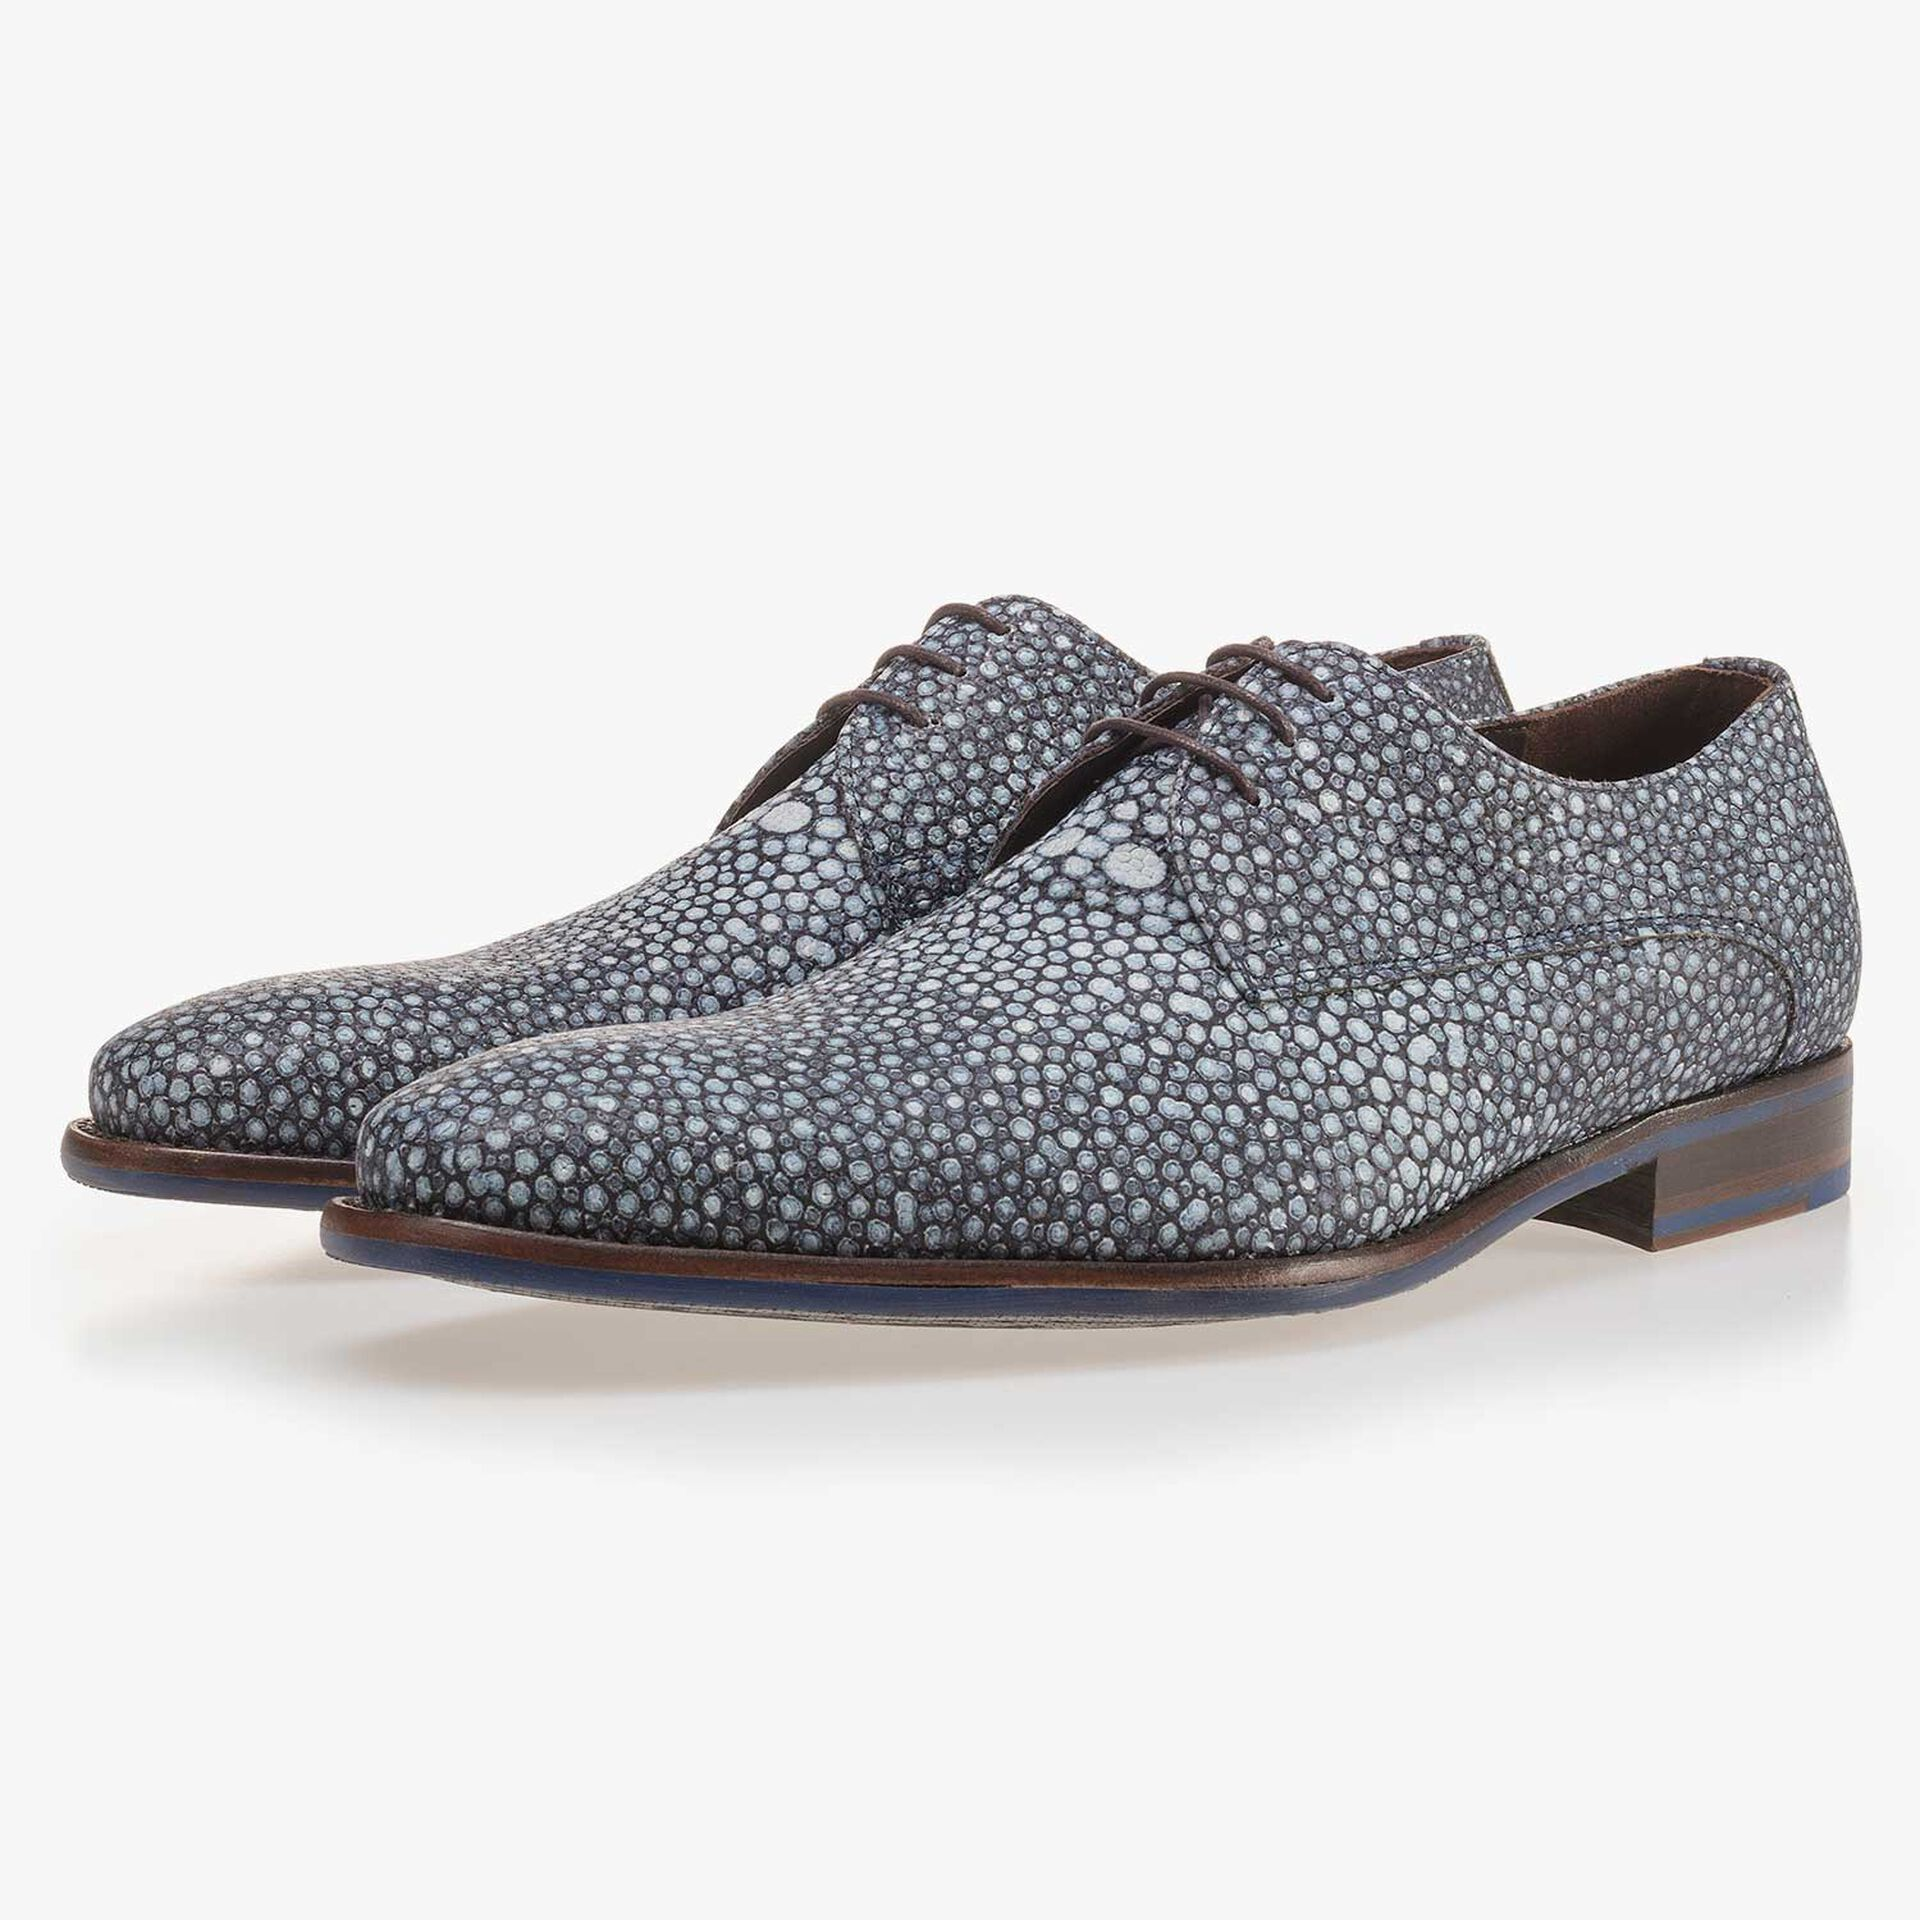 Blue, patterned calf's leather lace shoe